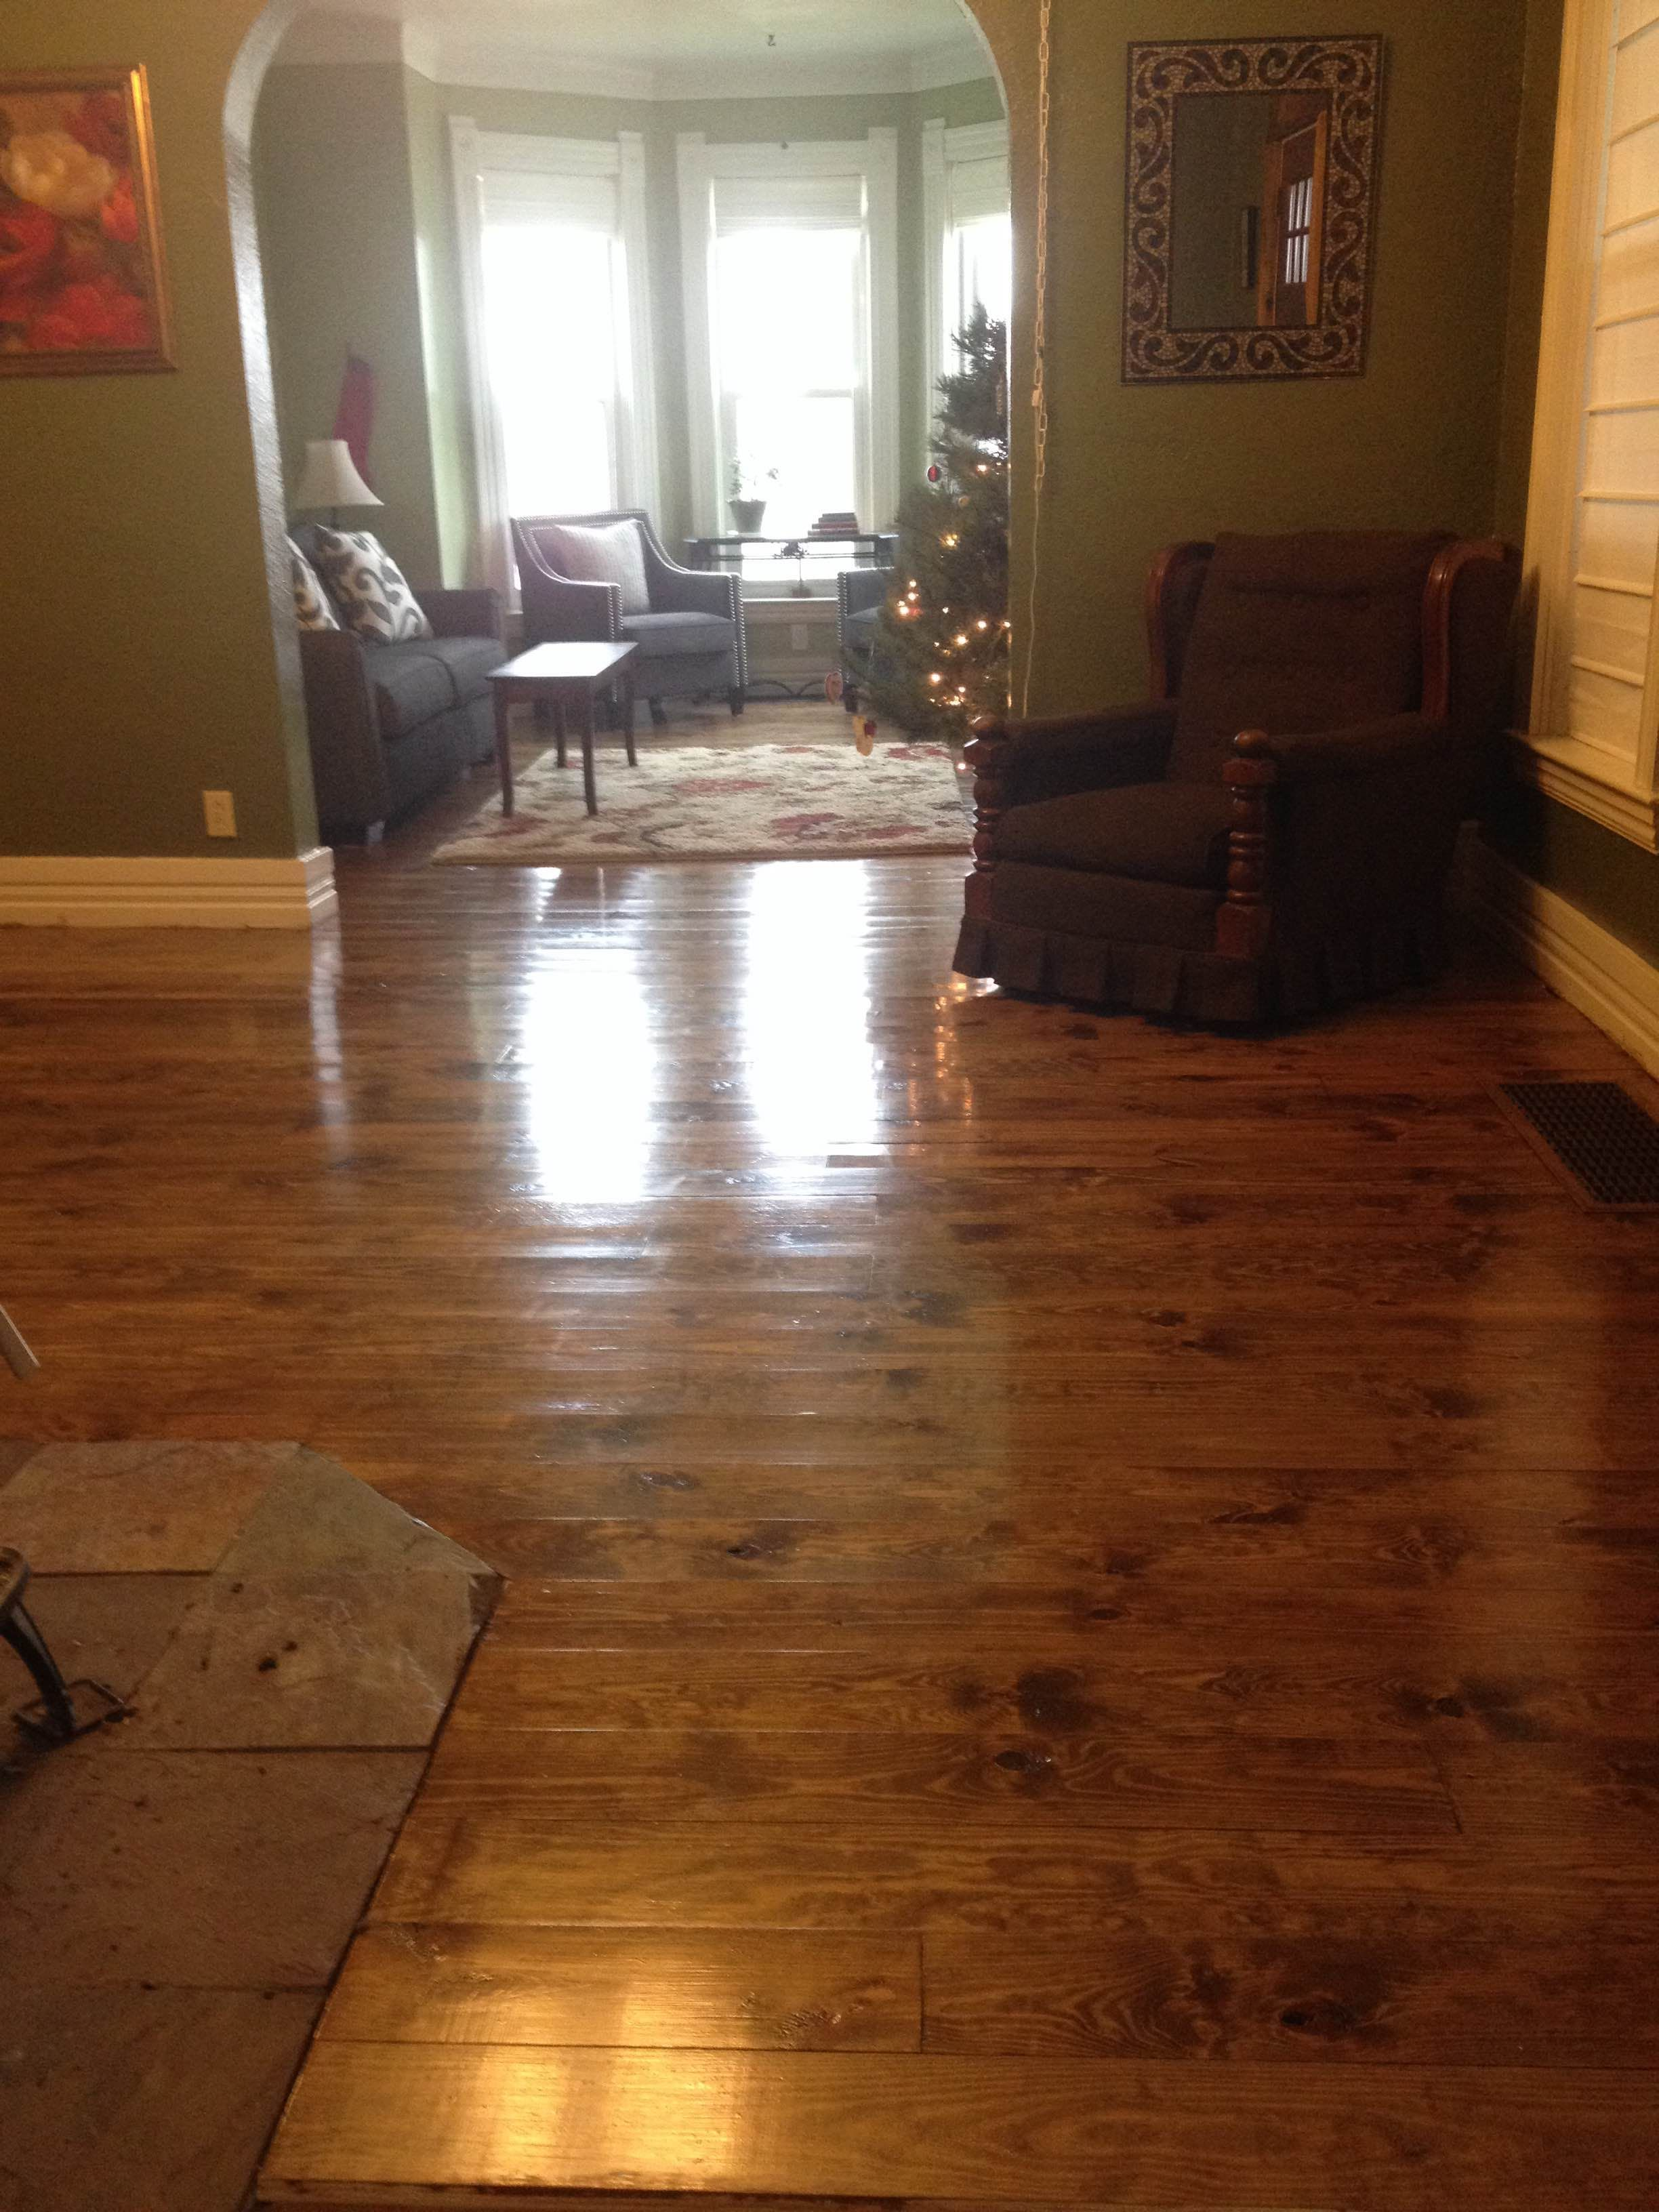 Allison In Mo Used Our 1 X 10 2 Or Better Knotty Pine To Create This Cool Look Flooring Hardwood Floors Pine Floors